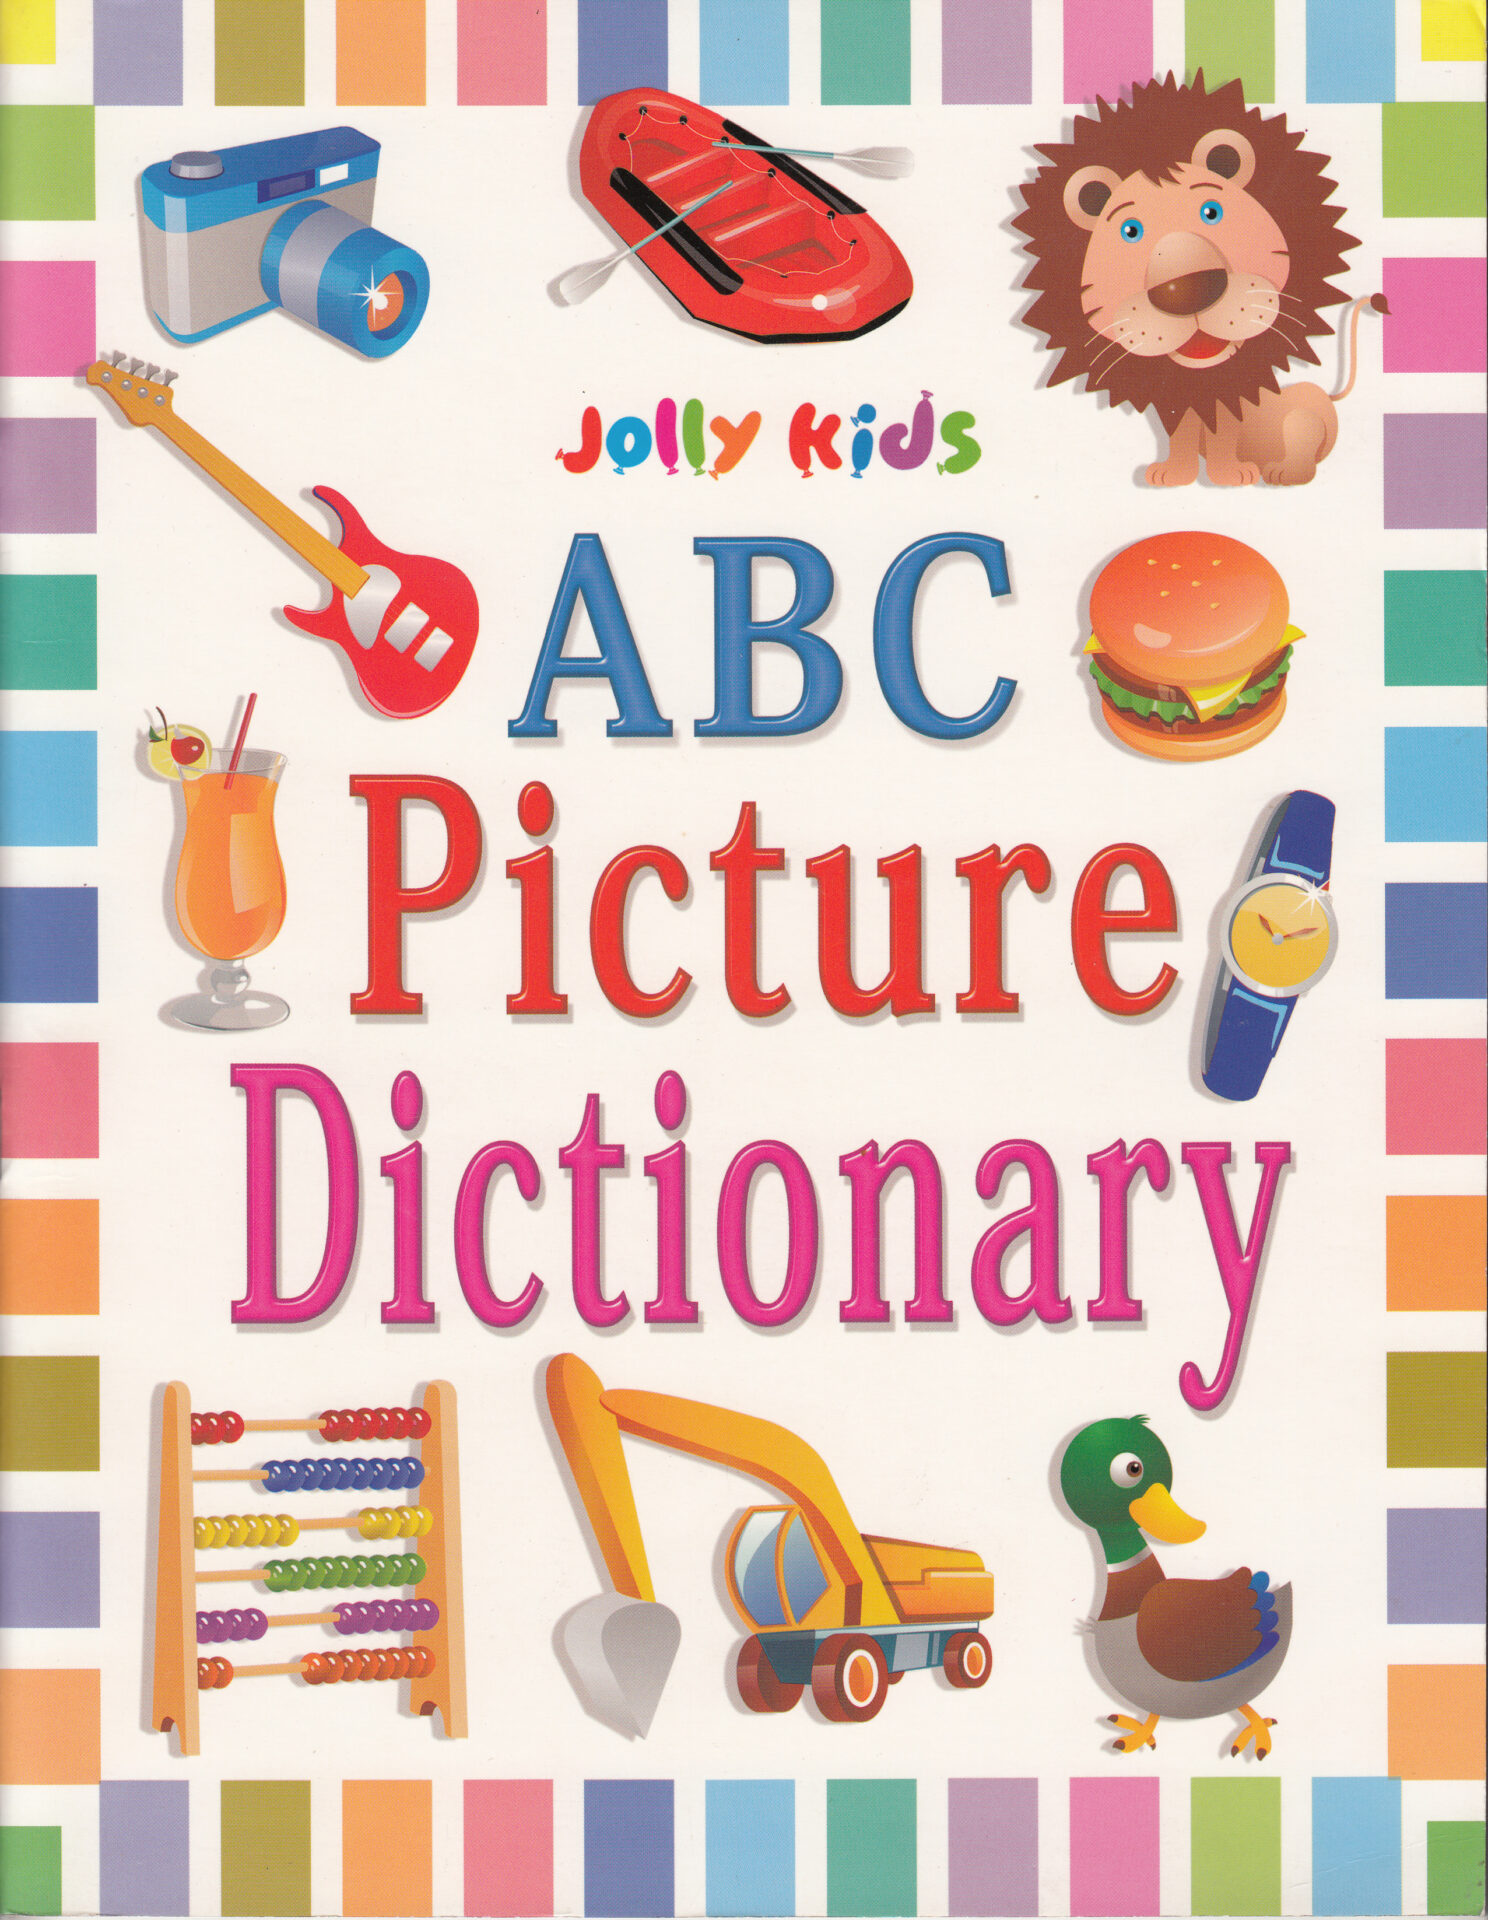 Jolly Kids ABC Picture Dictionary